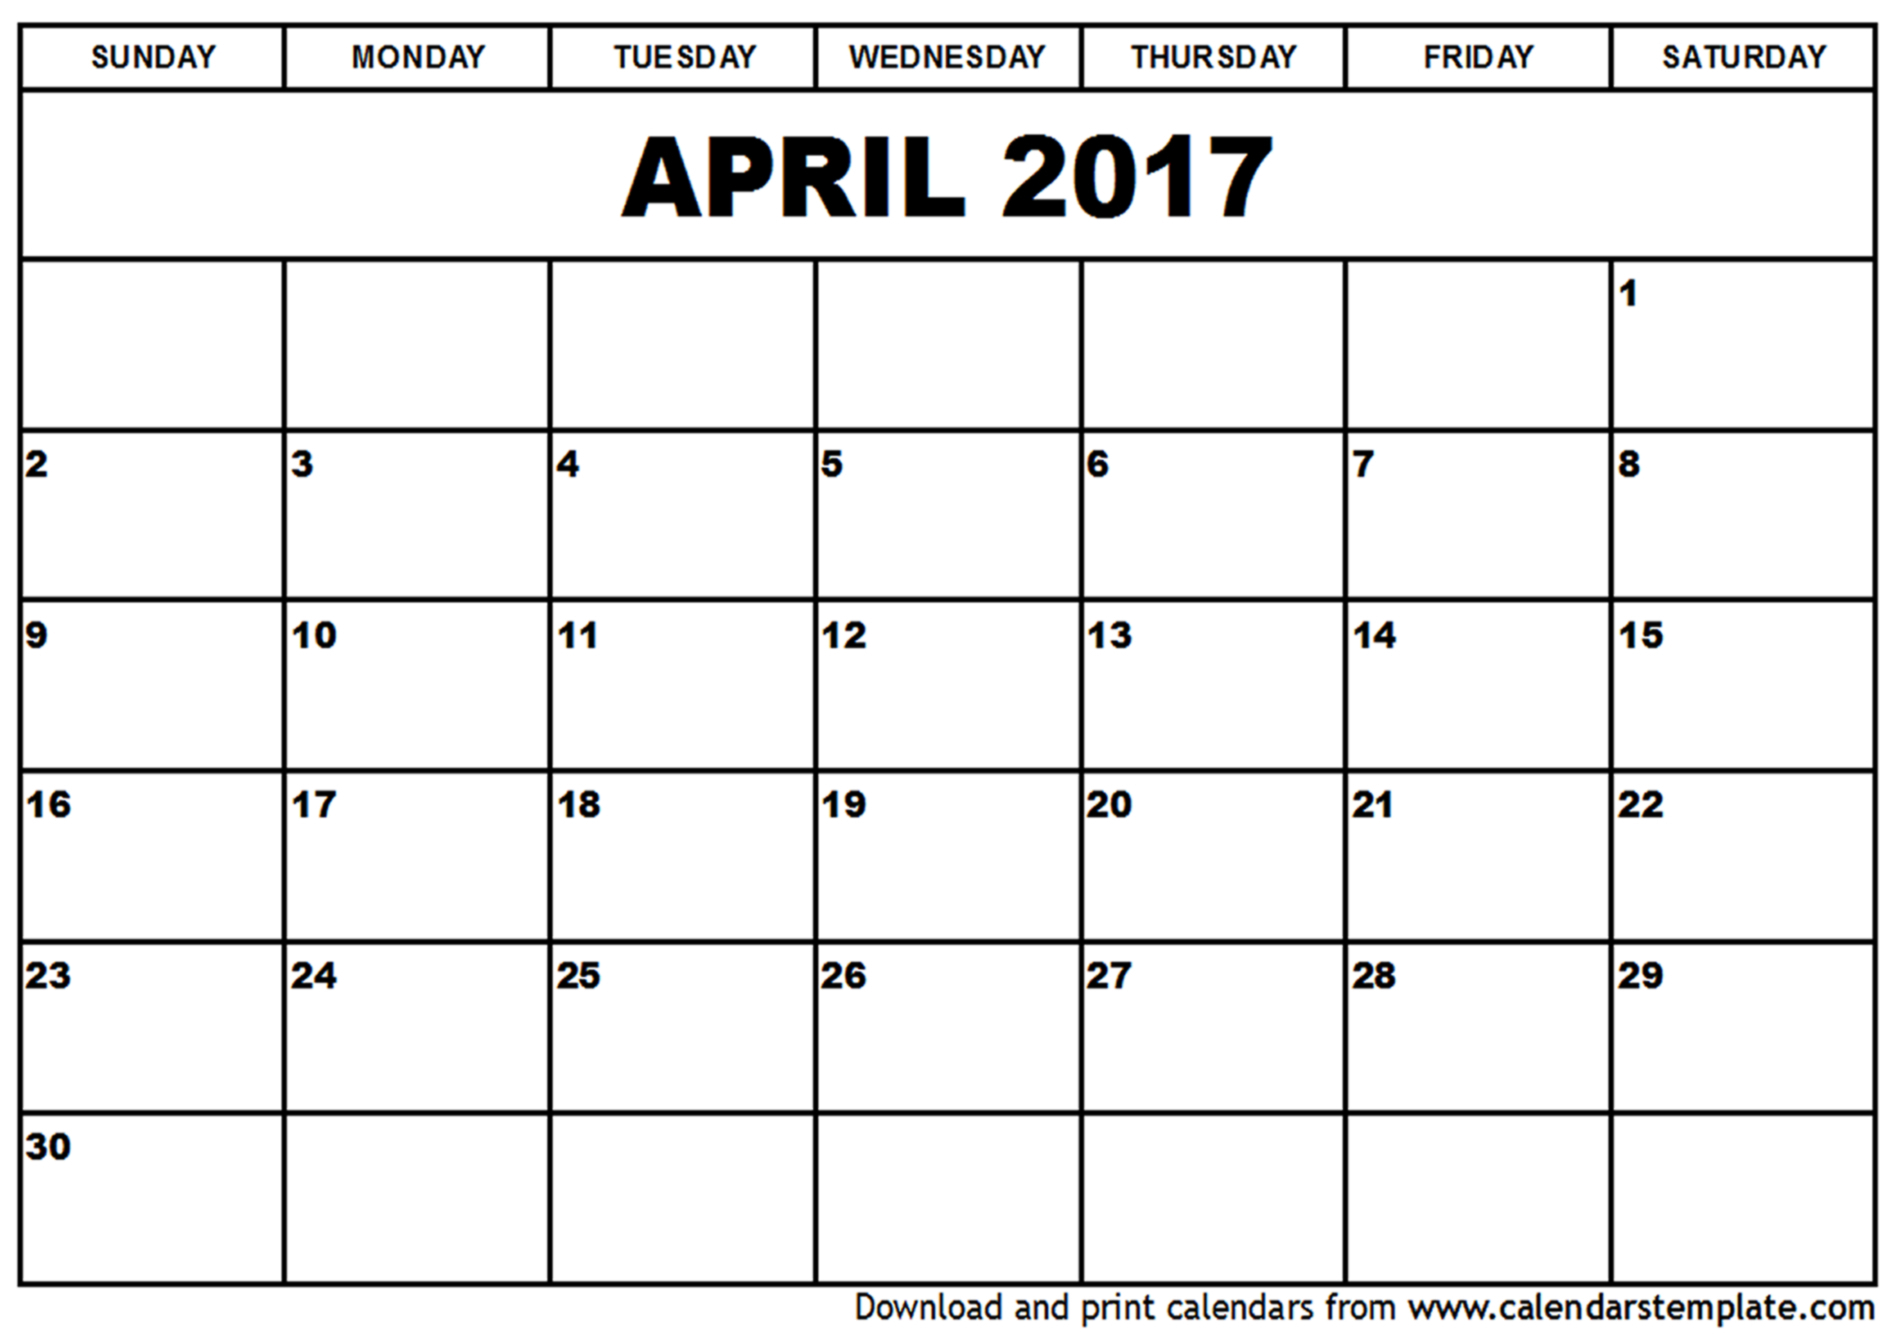 Printable-Blank-2017-April-Calendar-Template-Docs inside April Calendar Template